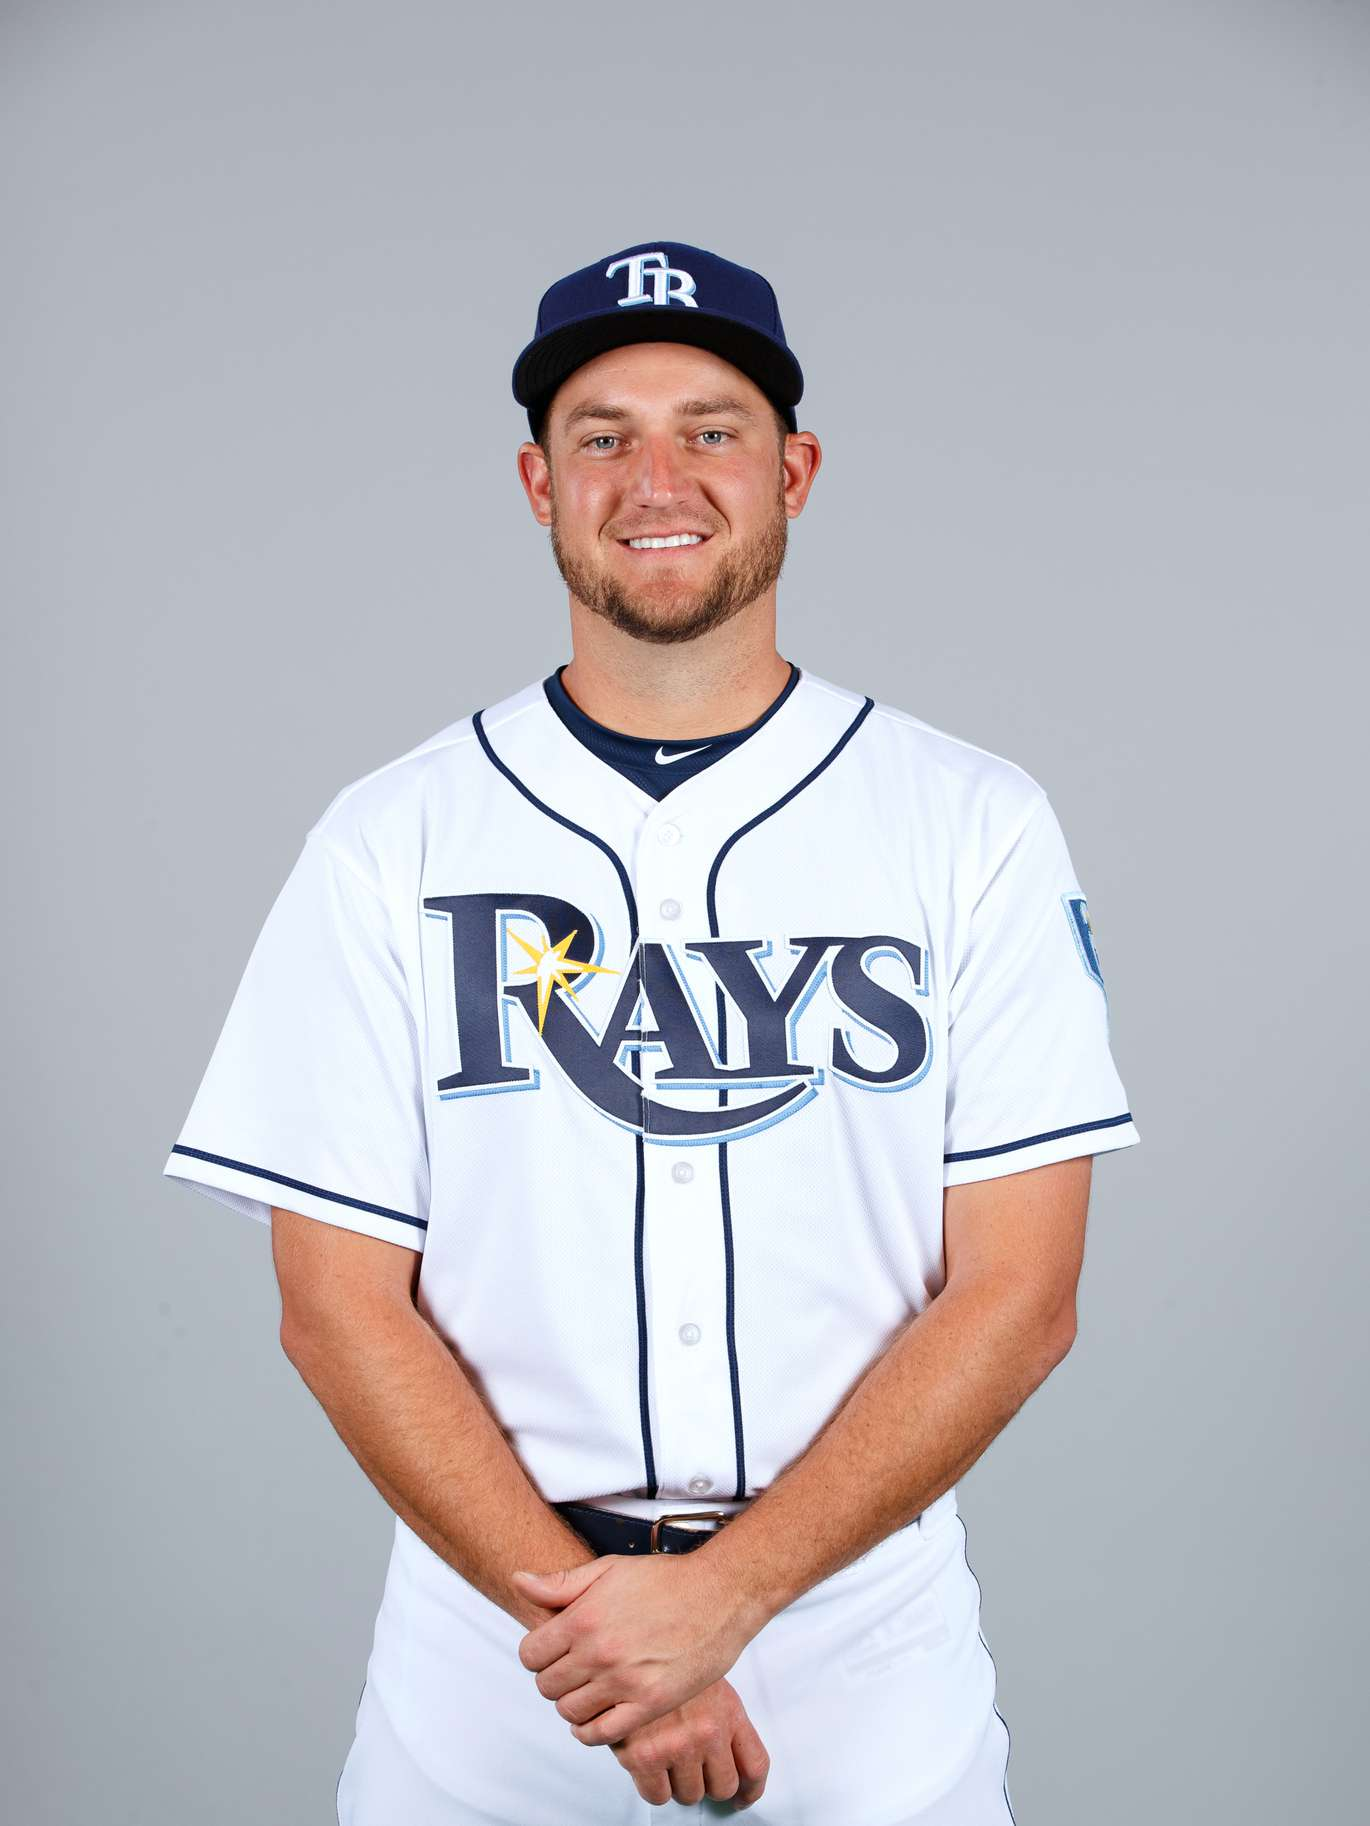 Rays consider him more valuable as multi-inning reliever than typical back-end starter, the question is if whether that turns out to be the case.